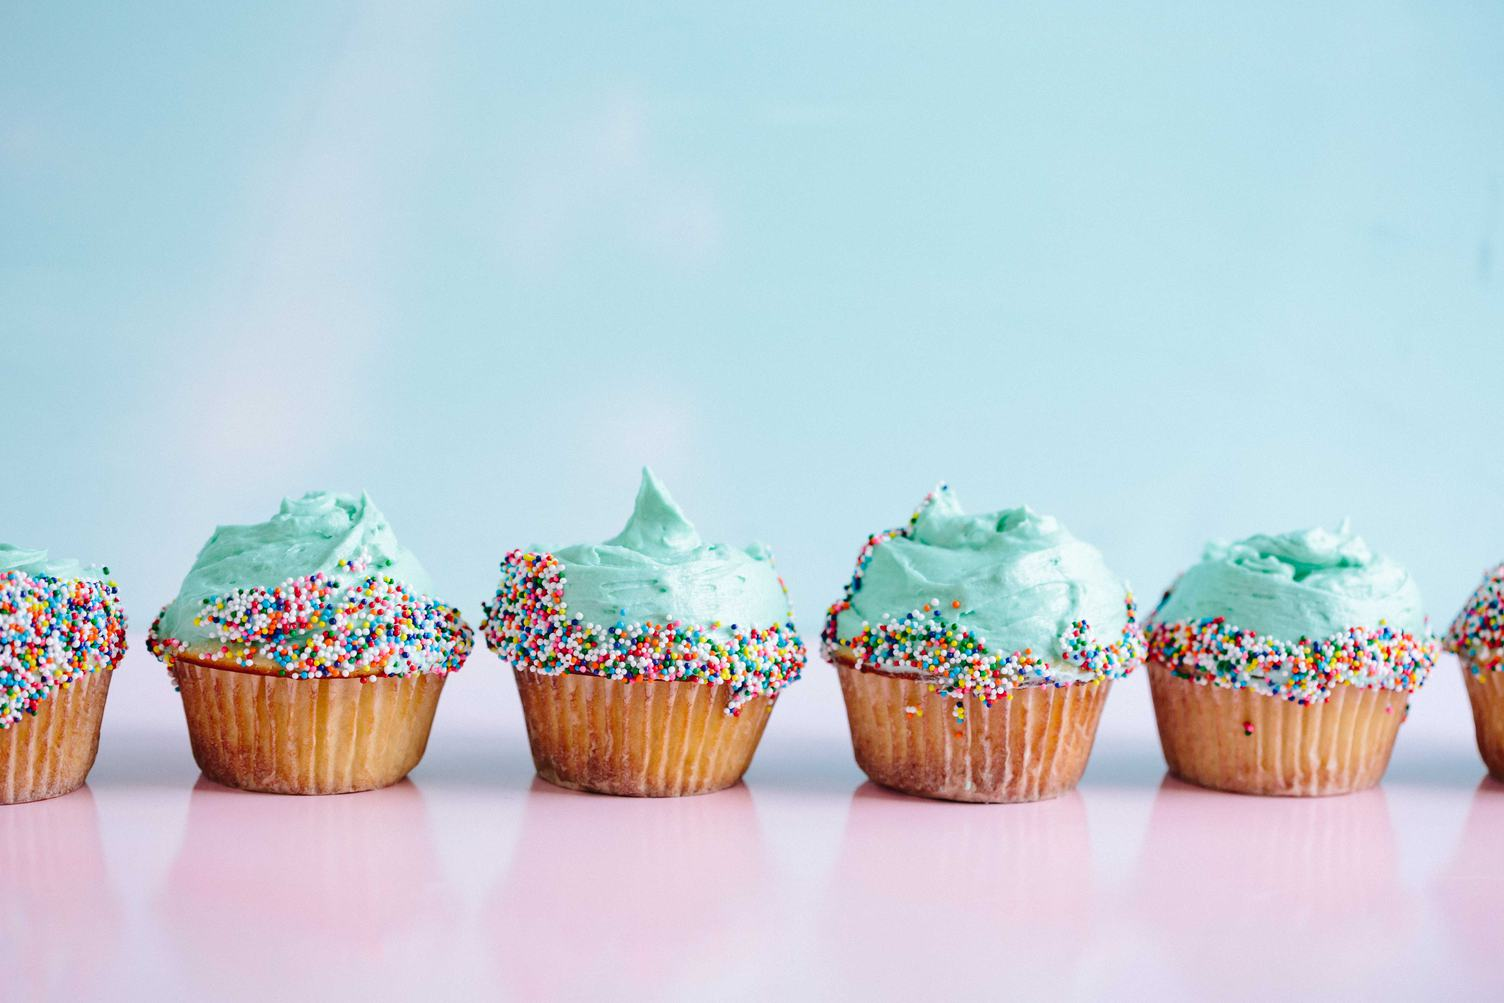 Colorful Cupcakes on a Turquoise Background